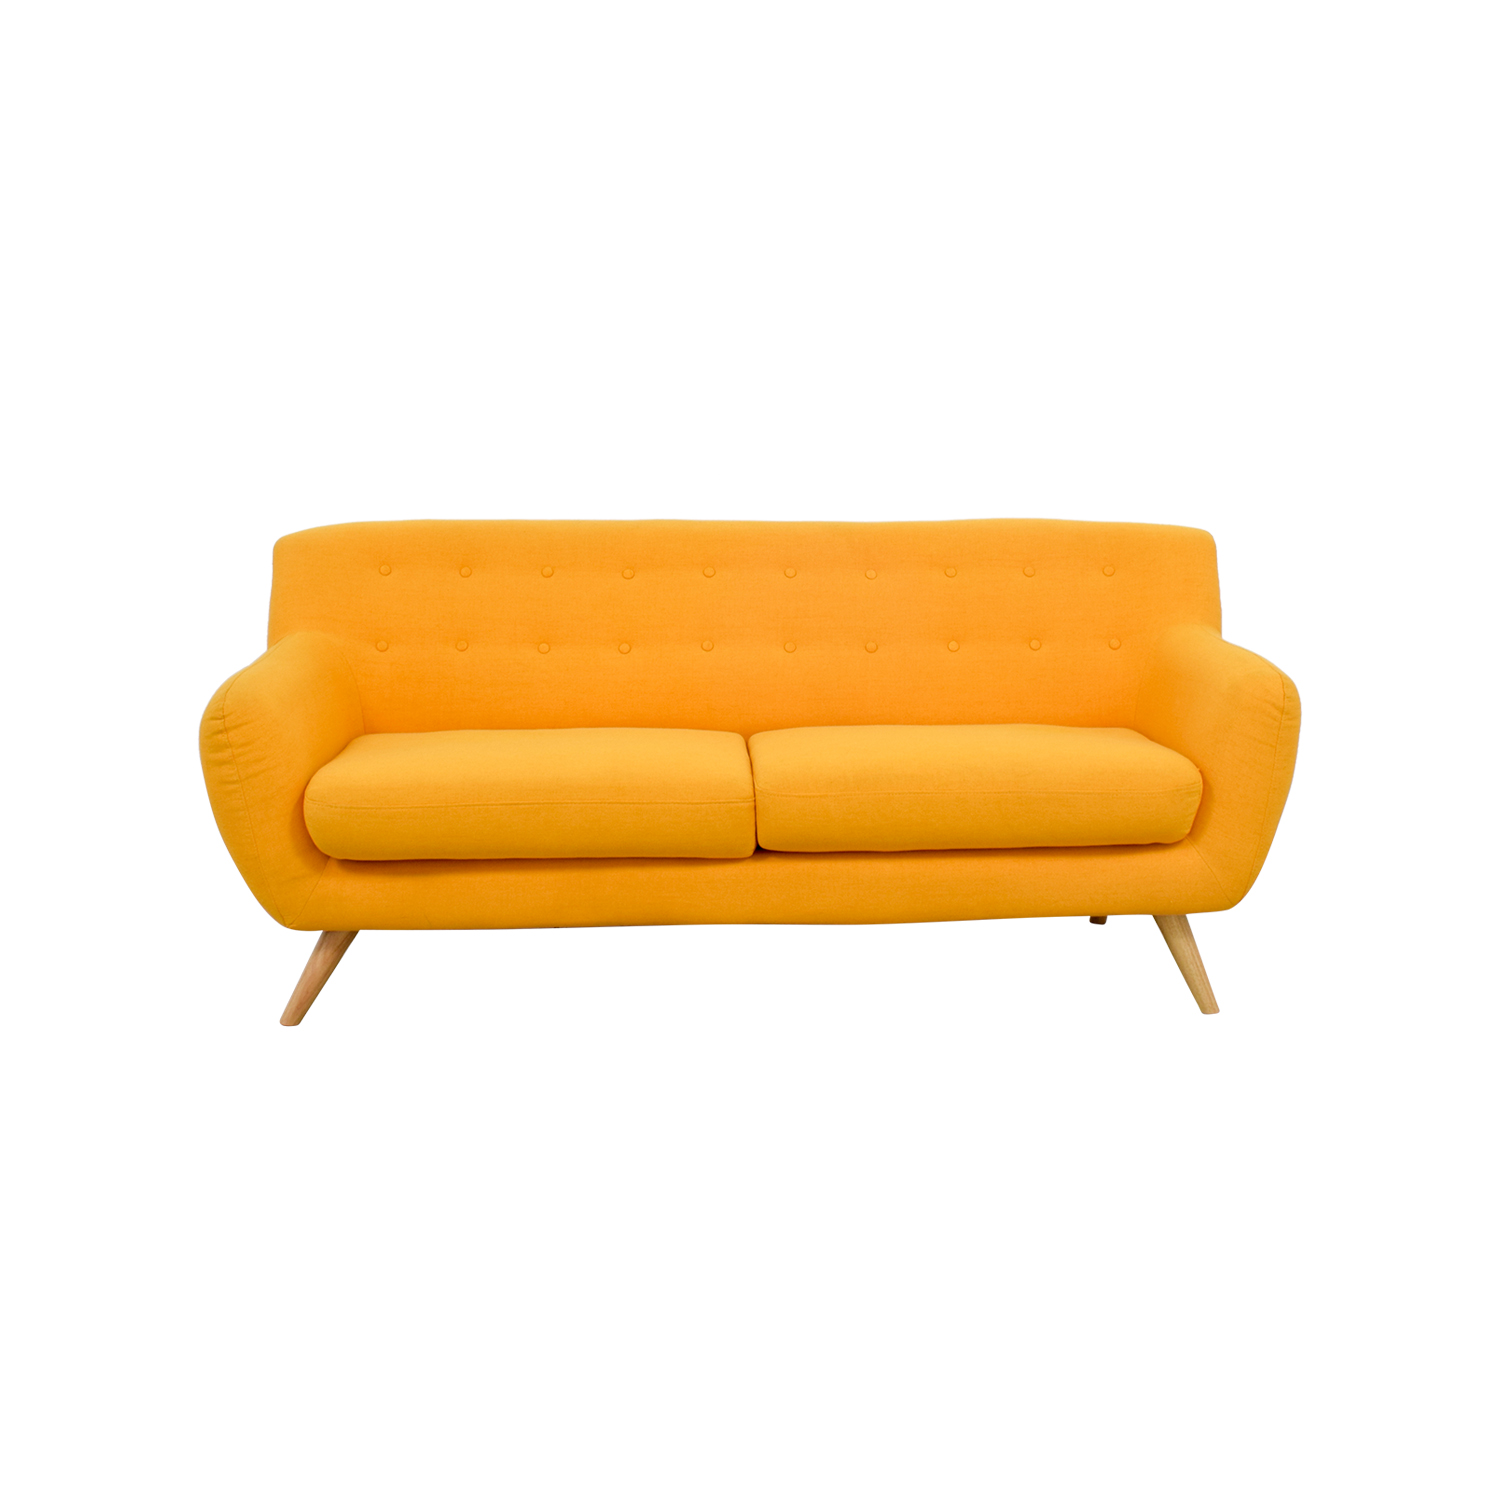 Mustard Yellow Sofa on sale